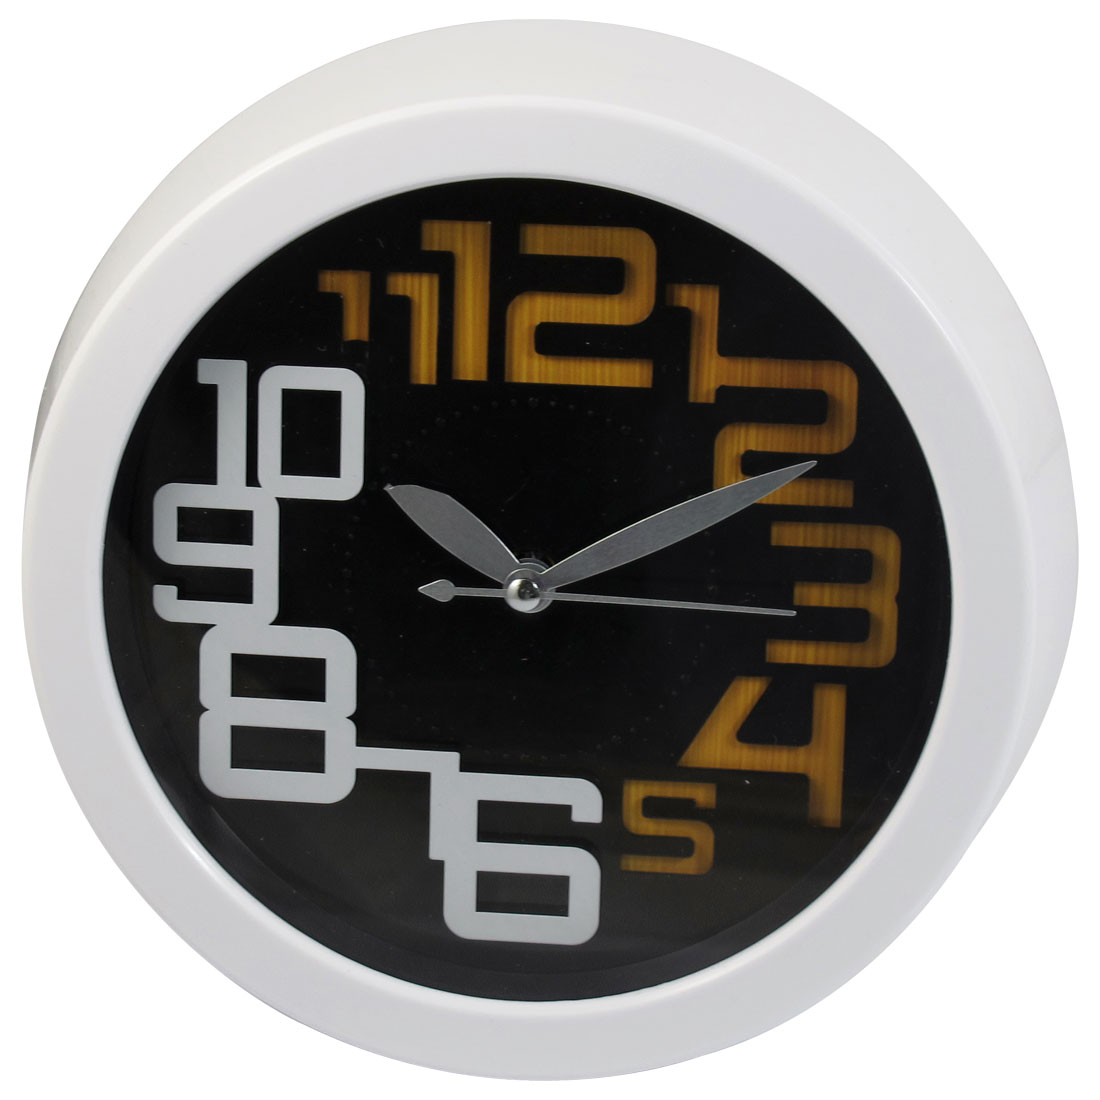 Battery Powered Round Dial Wall Mounted Clock White for Home Office